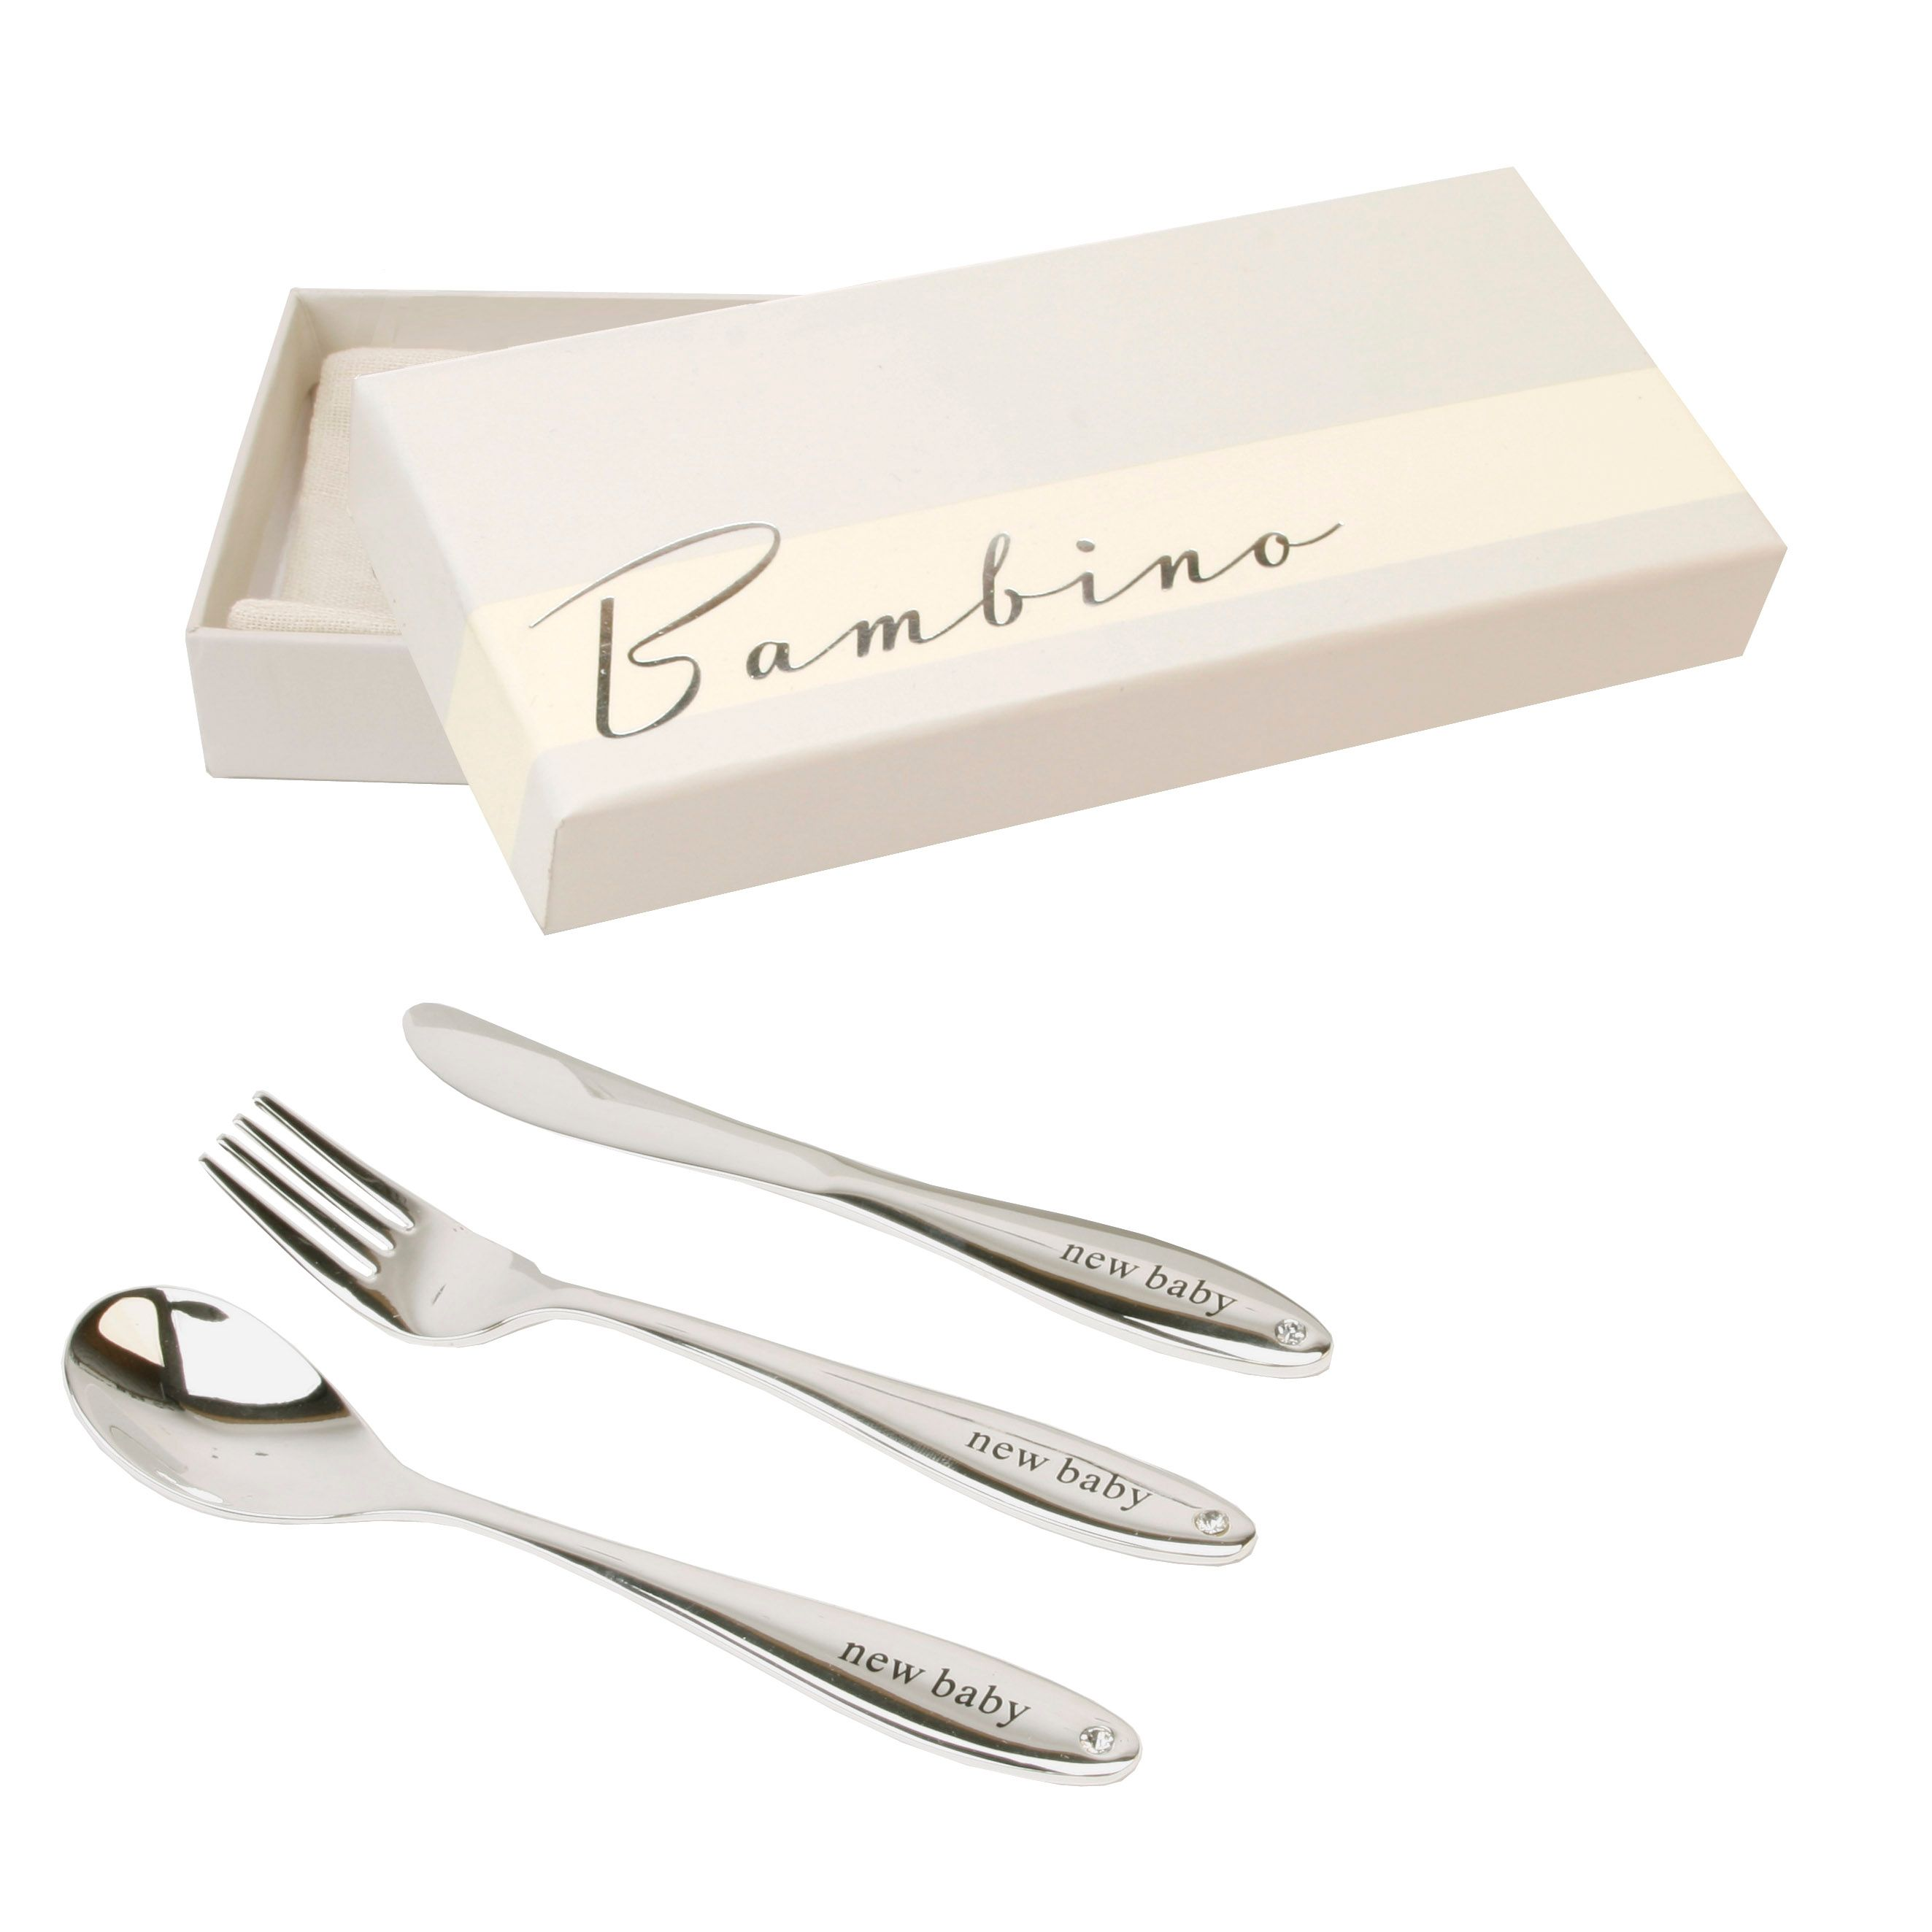 Bambino Bambino S/plated knife, fork/spoon set